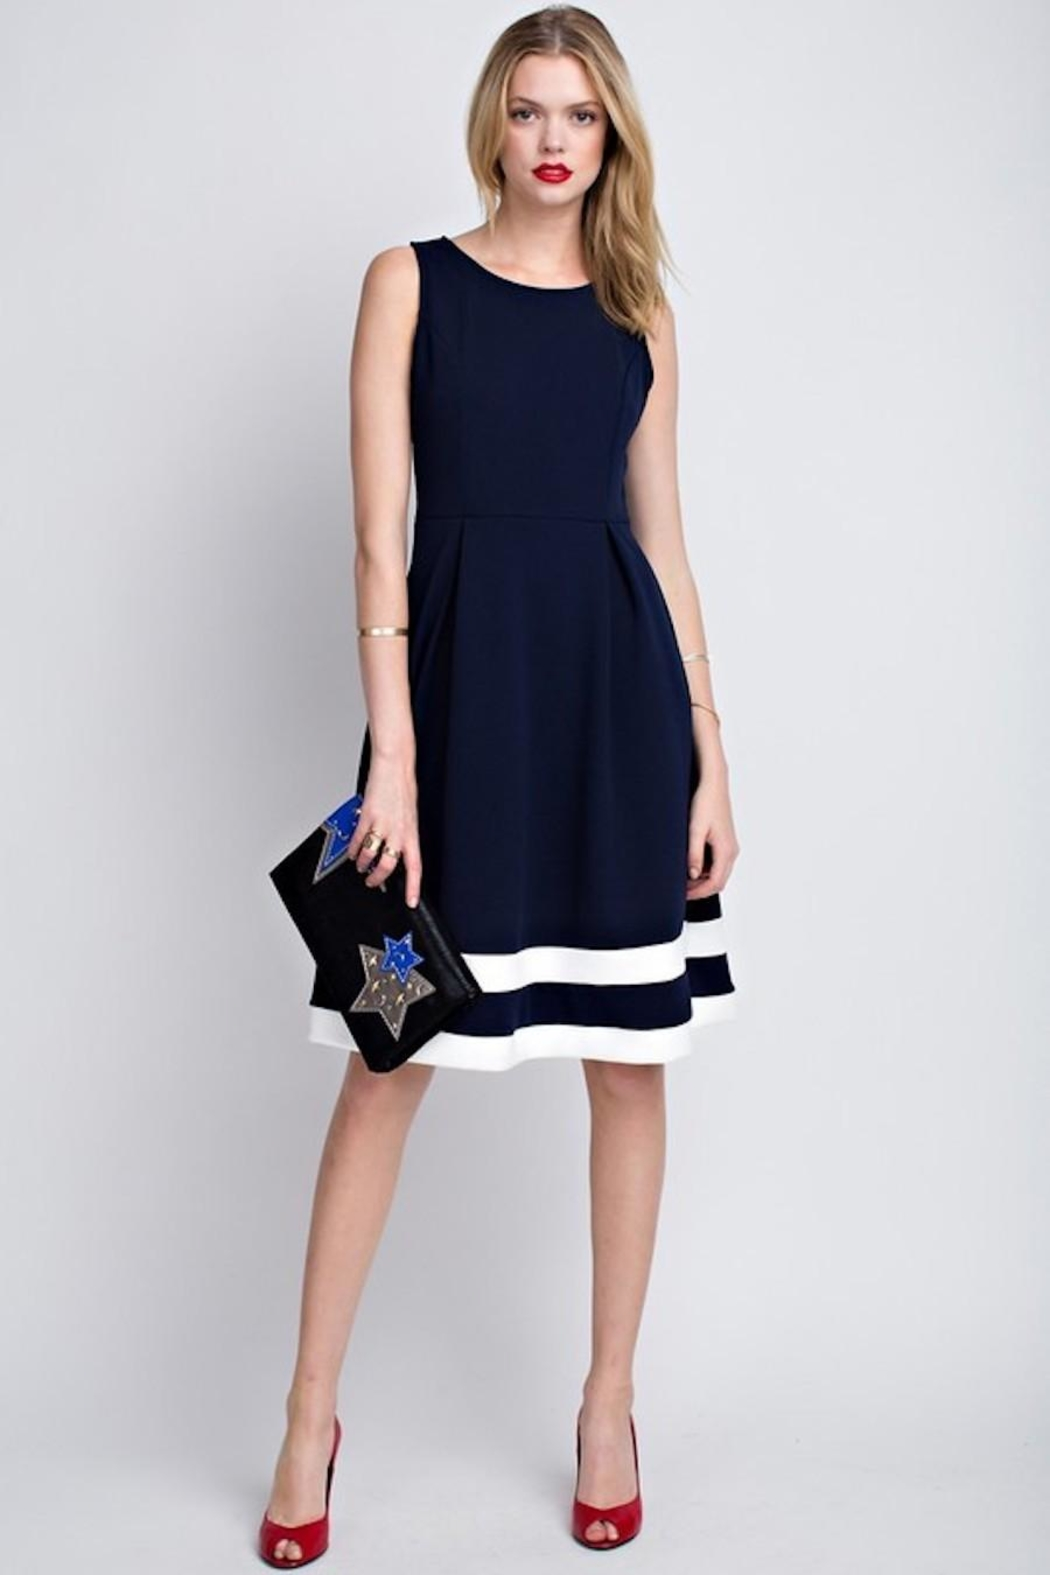 12pm by Mon Ami Classic Navy Dress - Main Image